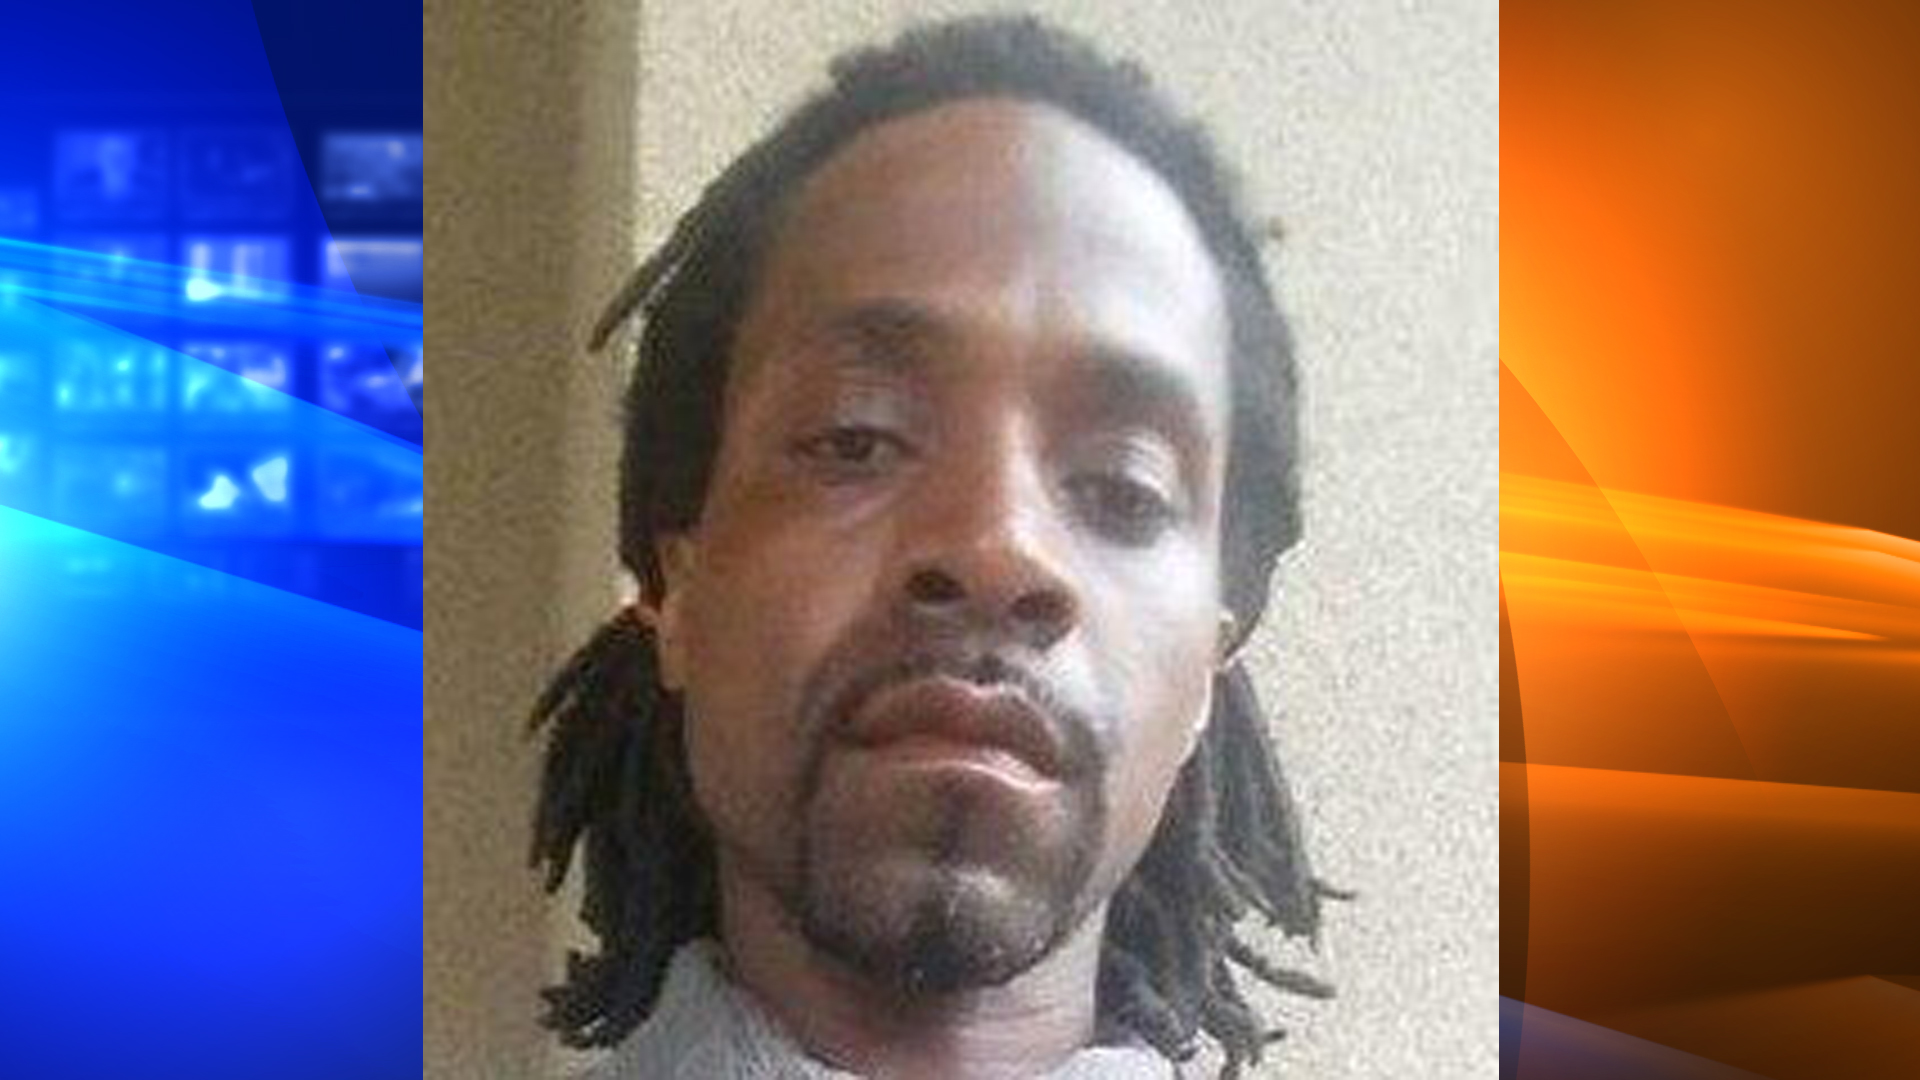 Kori Ali Muhammad, 39, was taken into custody on April 18, 2017, in connection with the killings of three people in downtown Fresno. (Credit: Fresno Police Department)